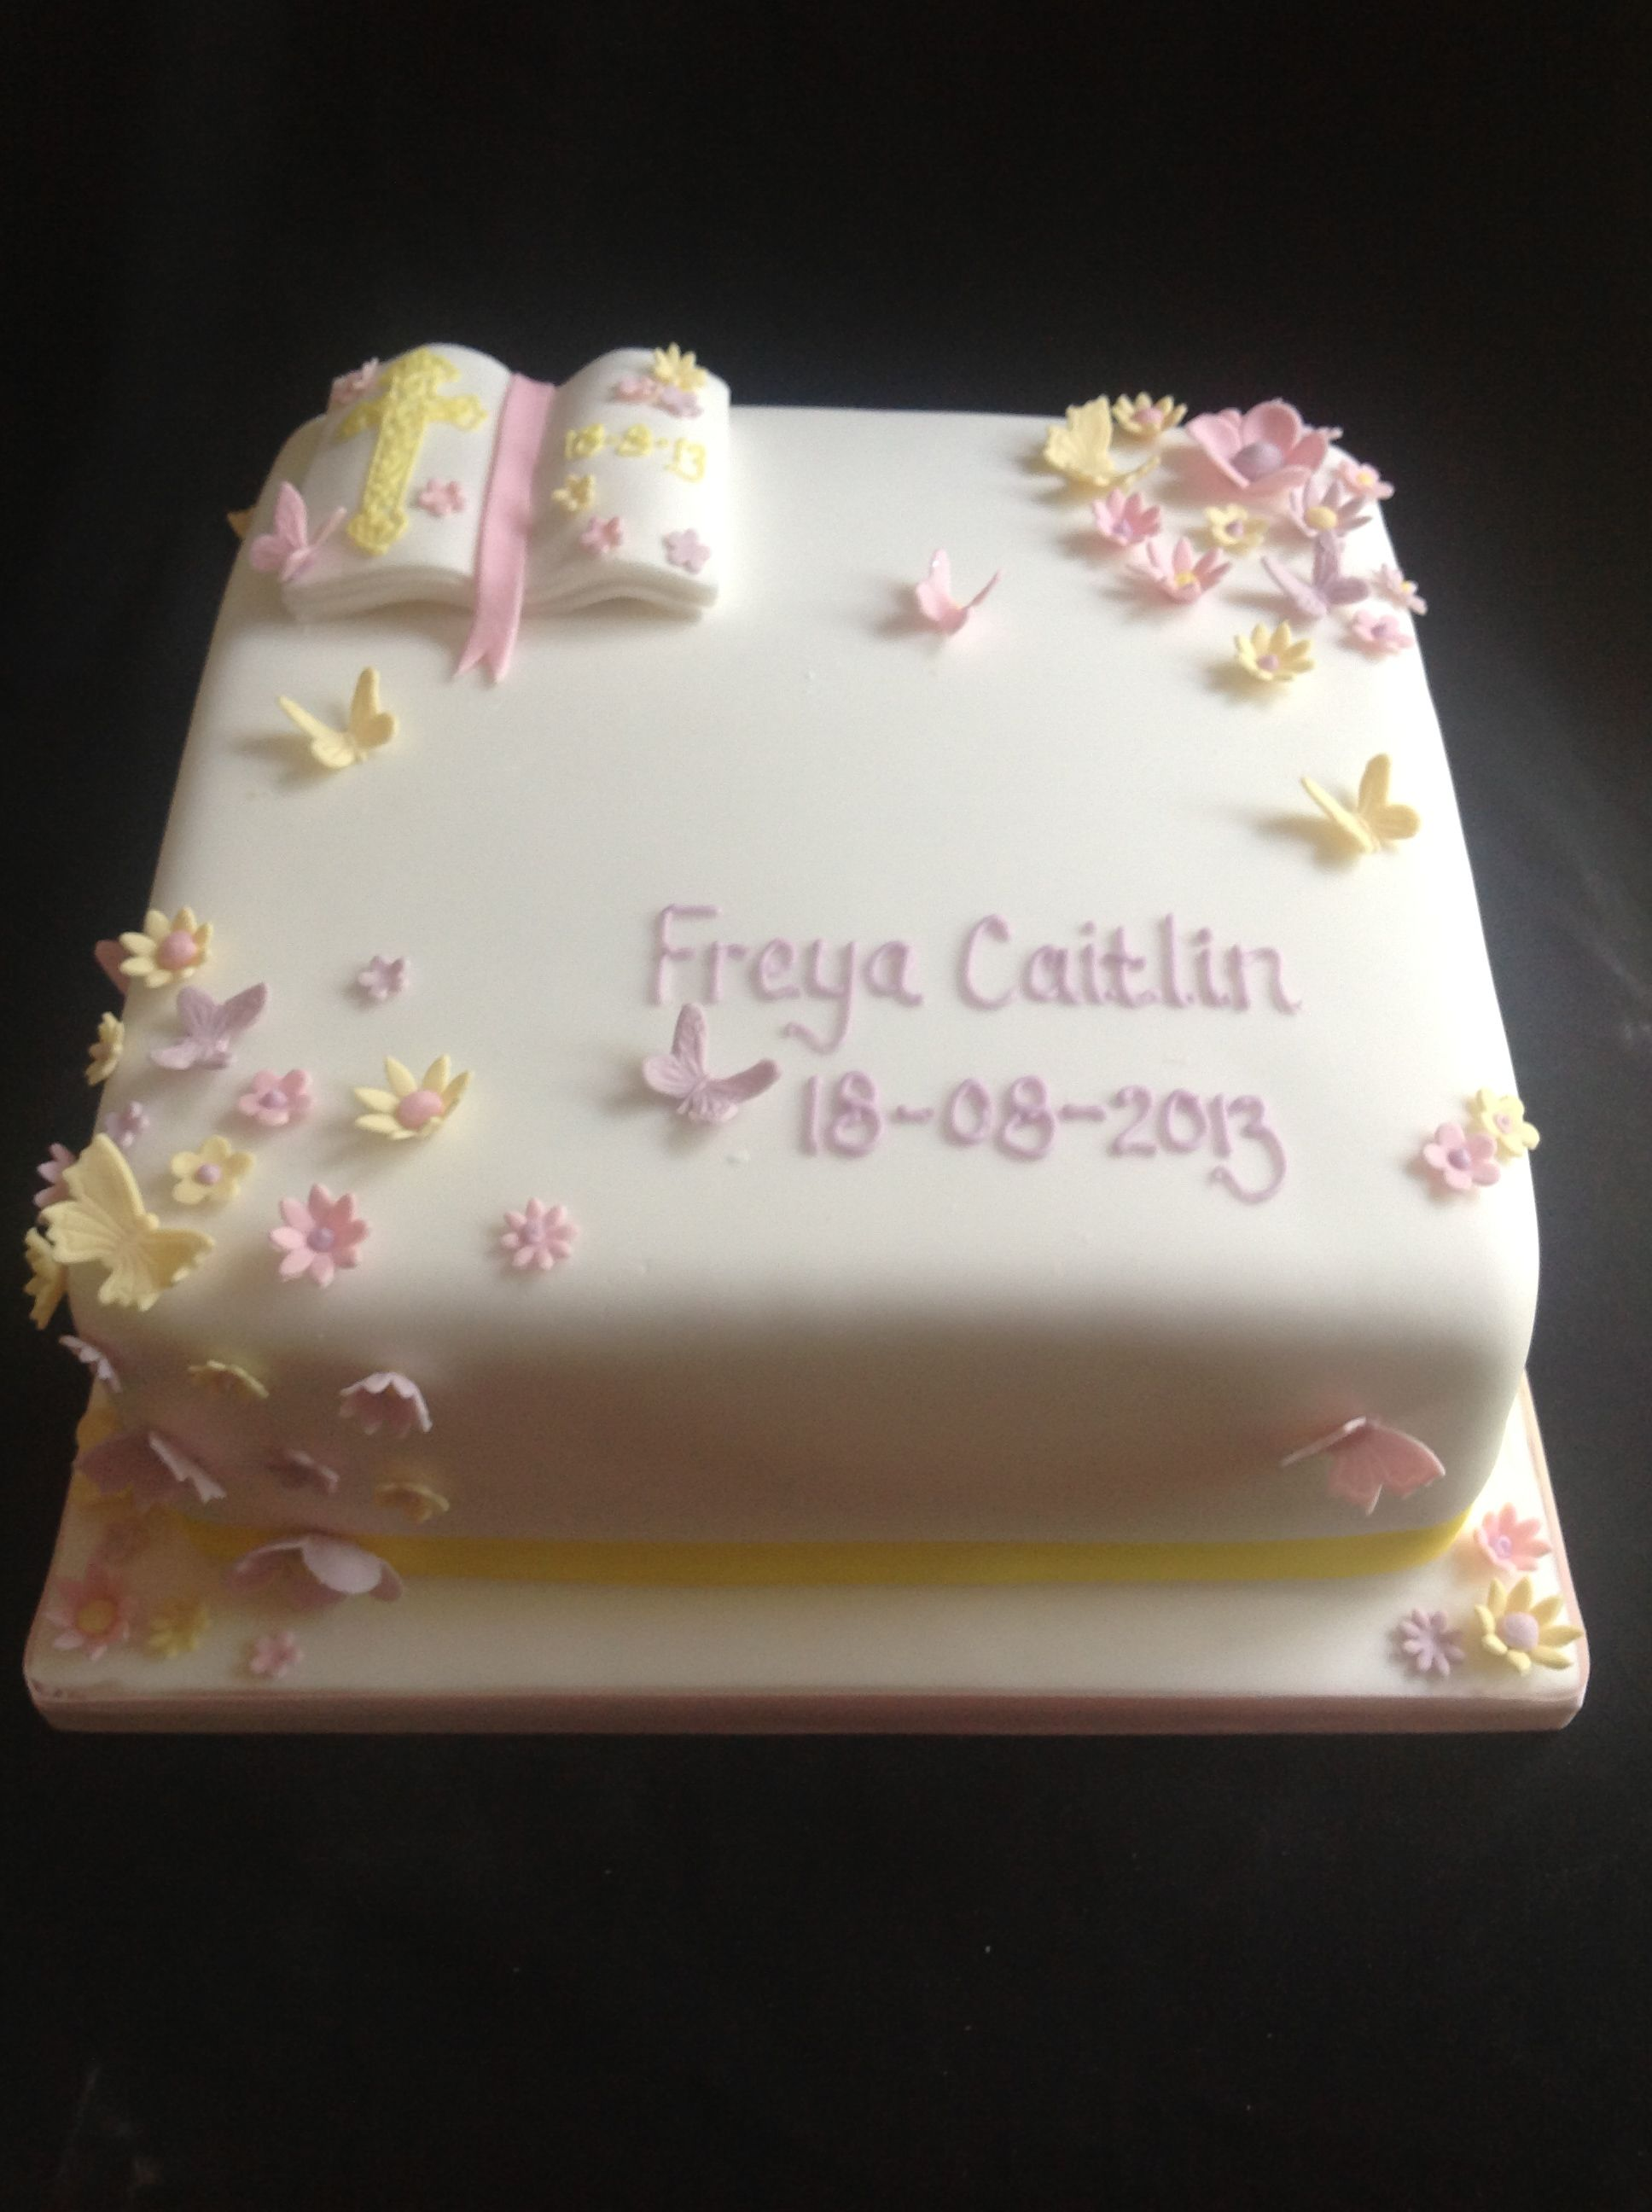 Square Christening Cake Images : square christening cakes - Google Search Baptism Cake ...